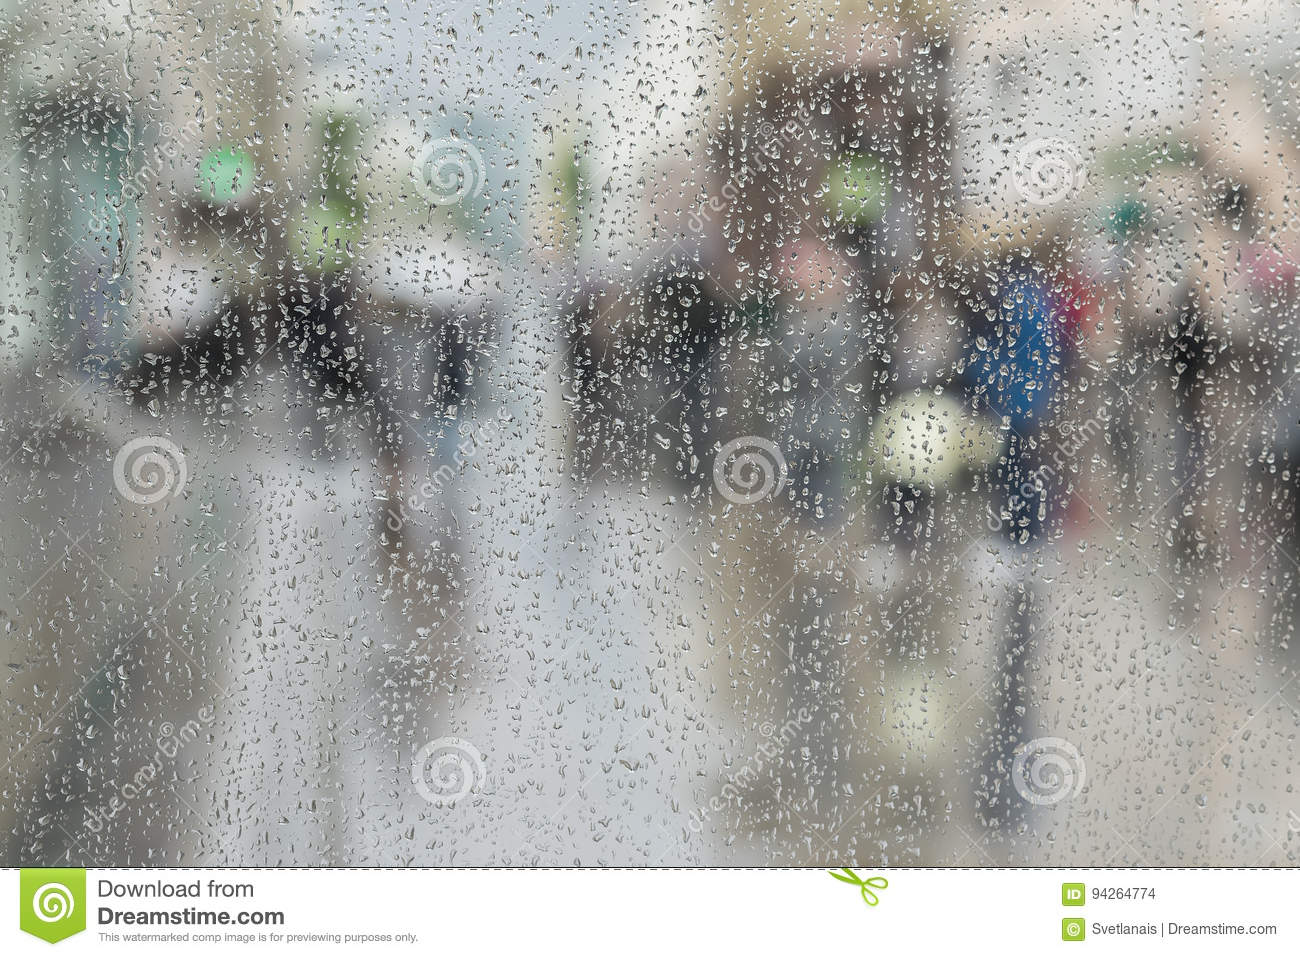 Raindrops on window glass, people walk on road in rainy day, blurred motion abstract background. Concept of shopping